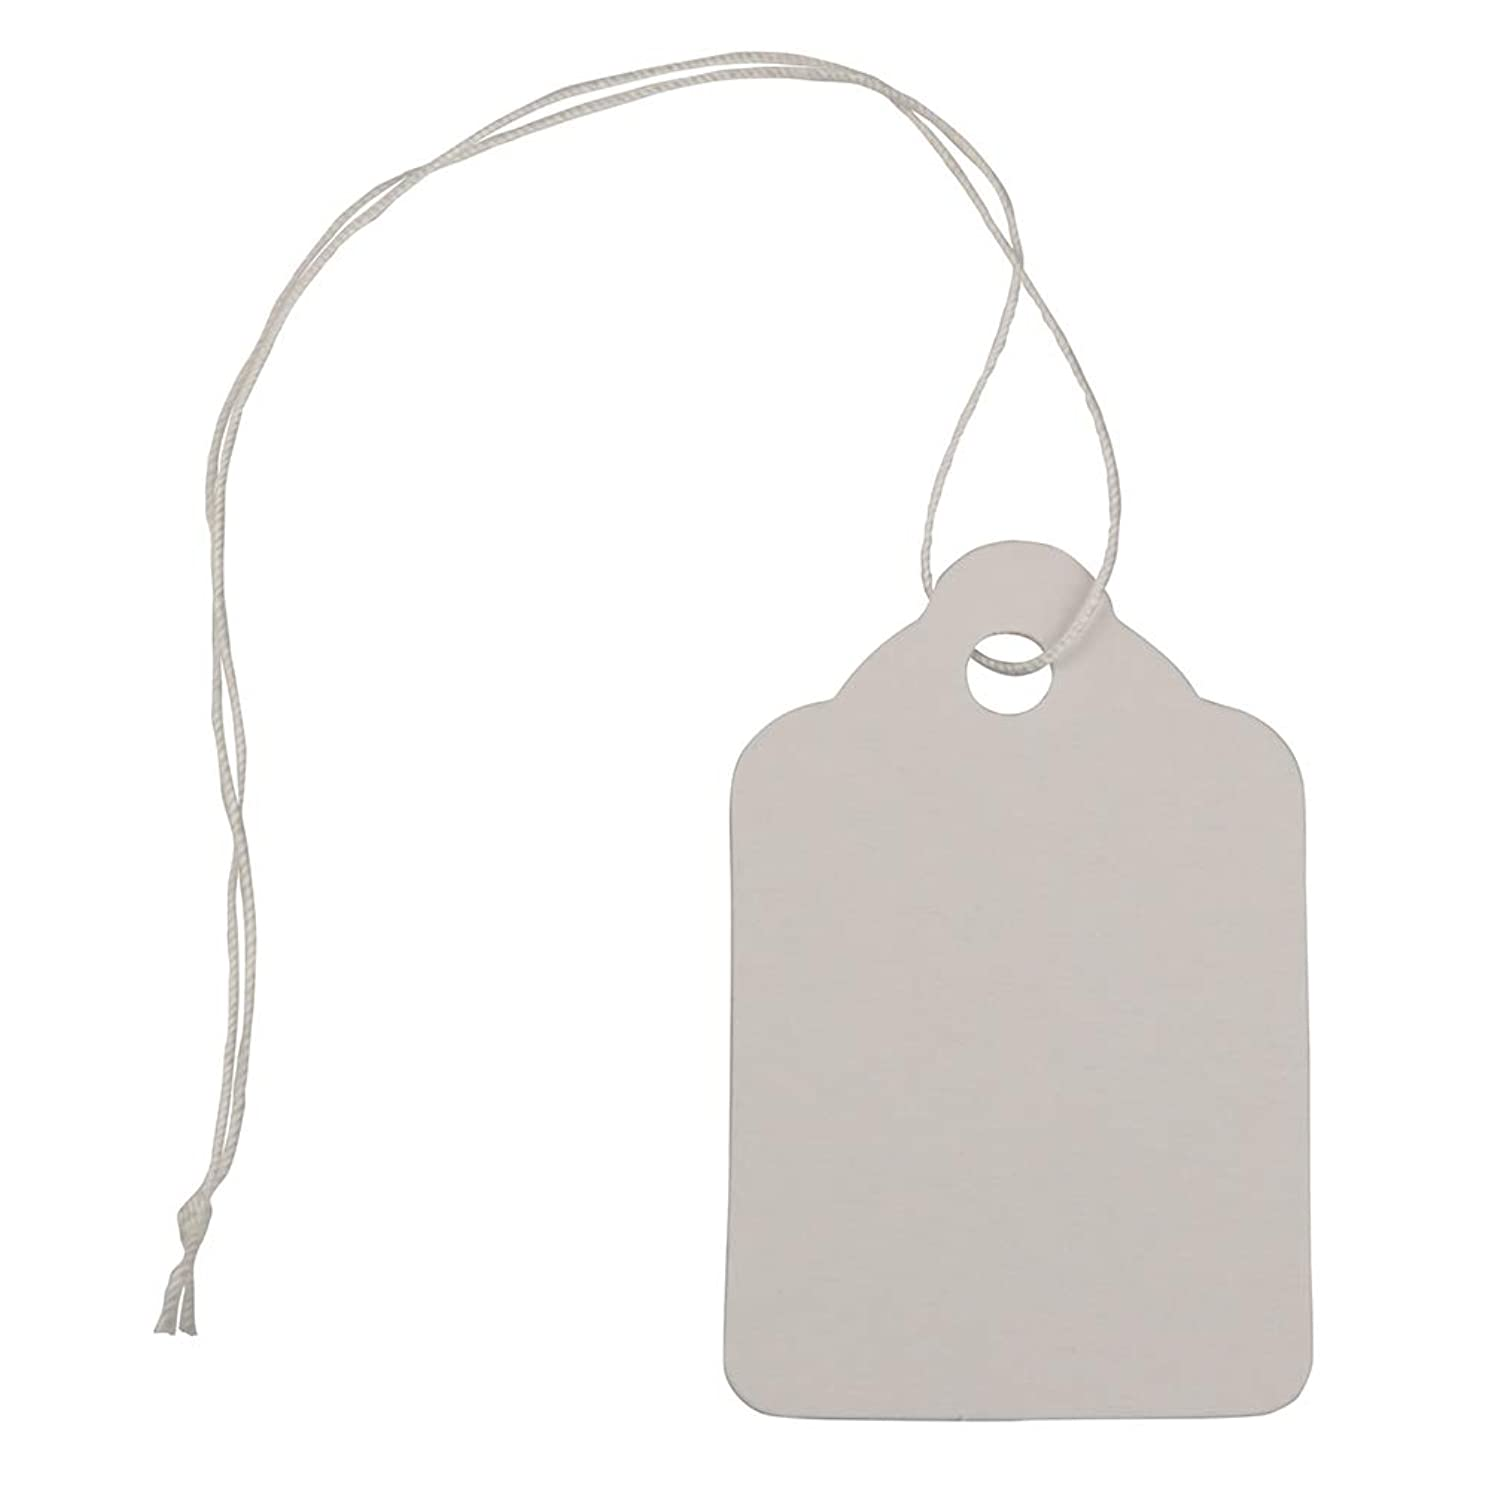 JAM PAPER Gift Tags with String - Mini - 1 3/4 x 1 1/10 - White - 75 Tags/Pack